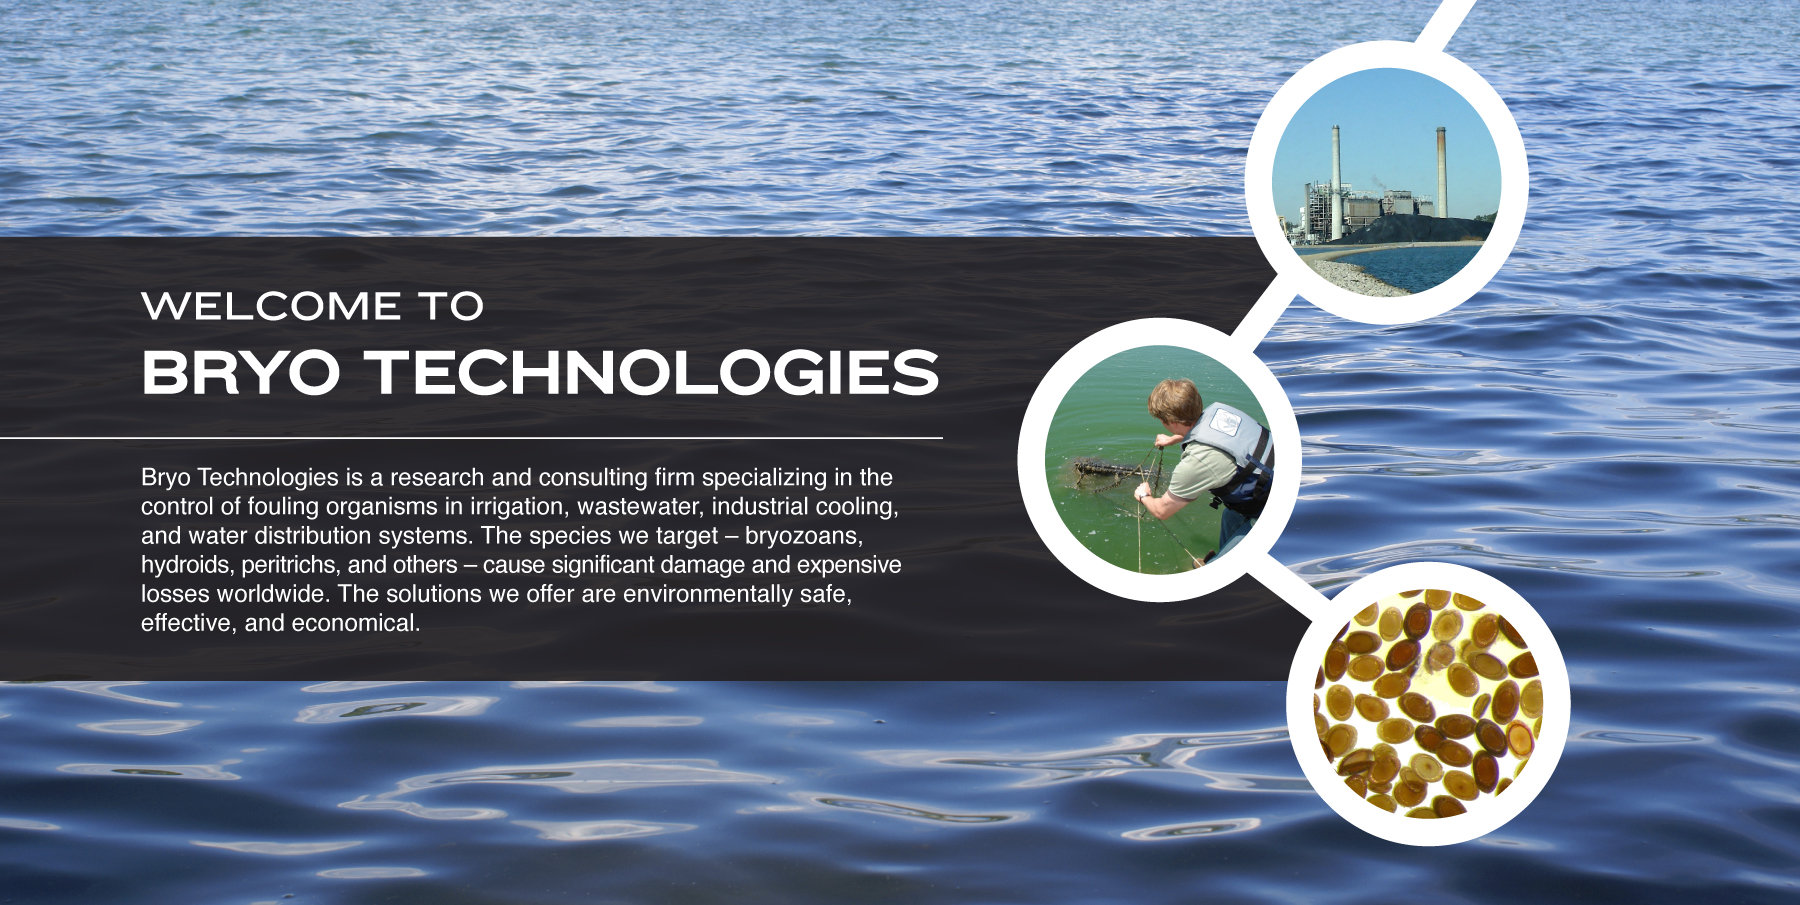 Bryo Technologies is a research and consulting firm specializing in the control of fouling organisms in irrigation, wastewater, industrial cooling, and water distribution systems. The species we target – bryozoans, hydroids, peritrichs, and others – cause significant damage and expensive losses worldwide. The solutions we offer are environmentally safe, effective, and economical.